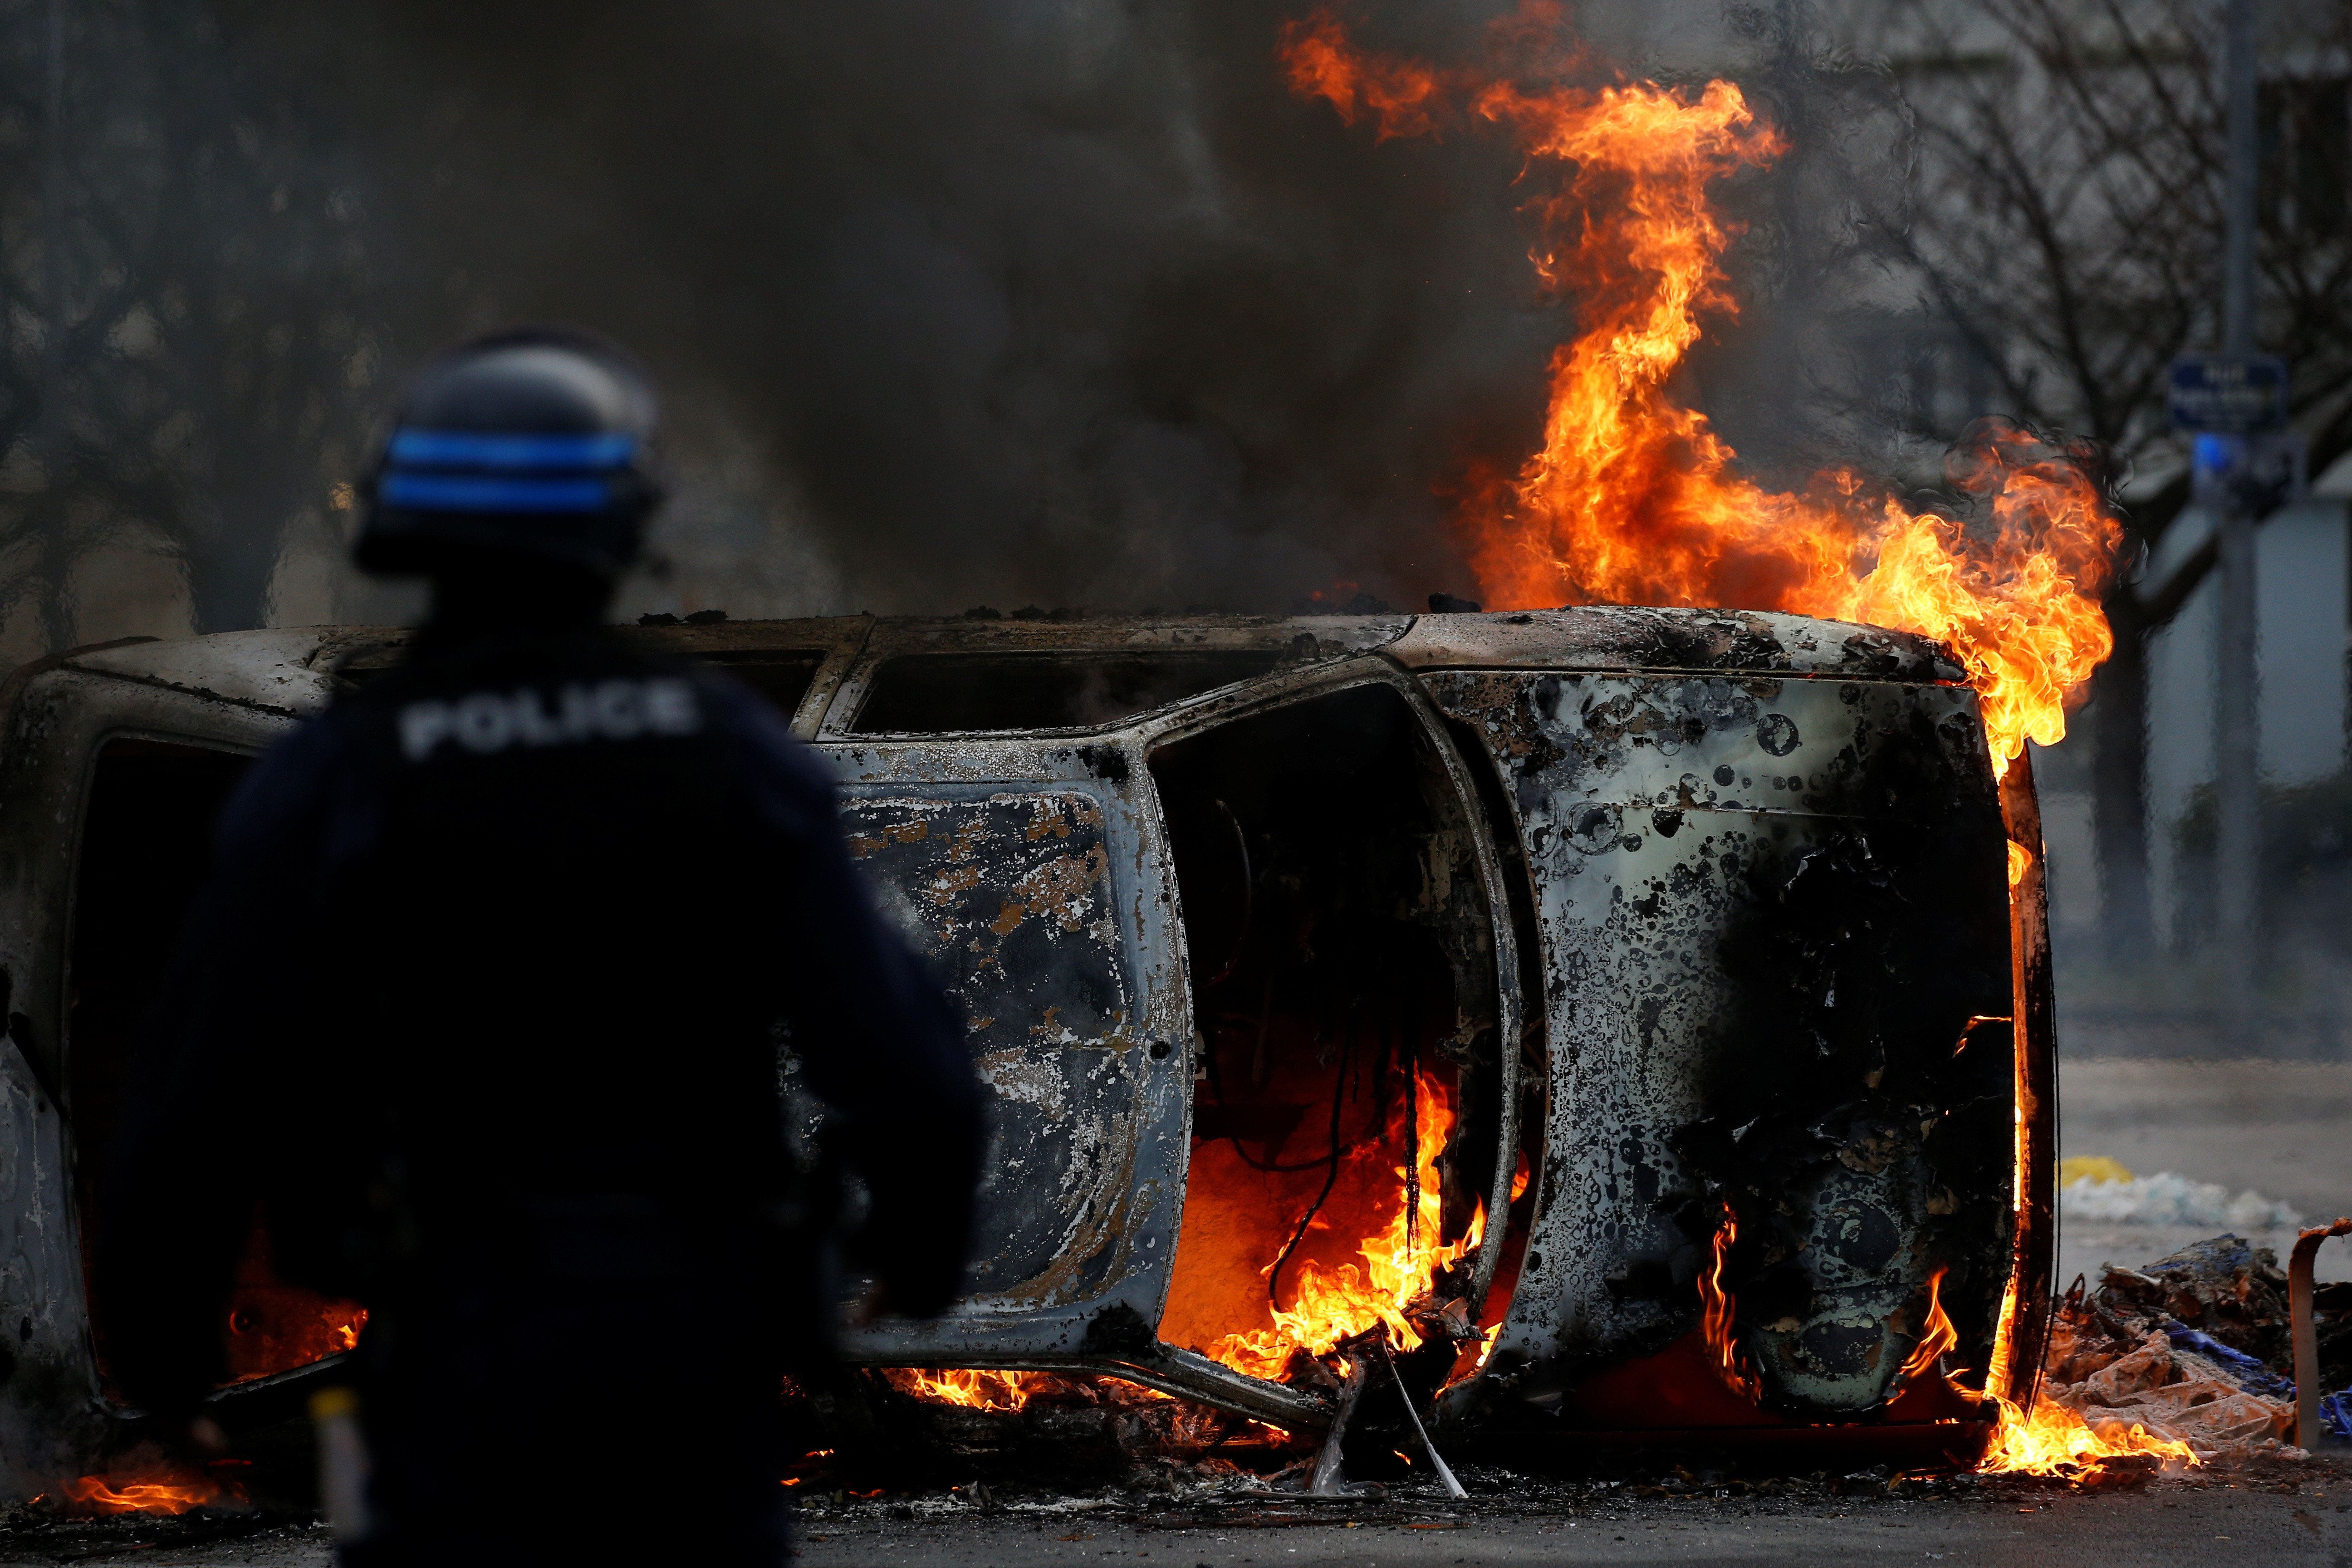 A French riot policeman stands next to a burning car as youth and high school students protest against the French government's reform plan, in Nantes, France, December 6, 2018. REUTERS/Stephane Mahe - RC1C04372080